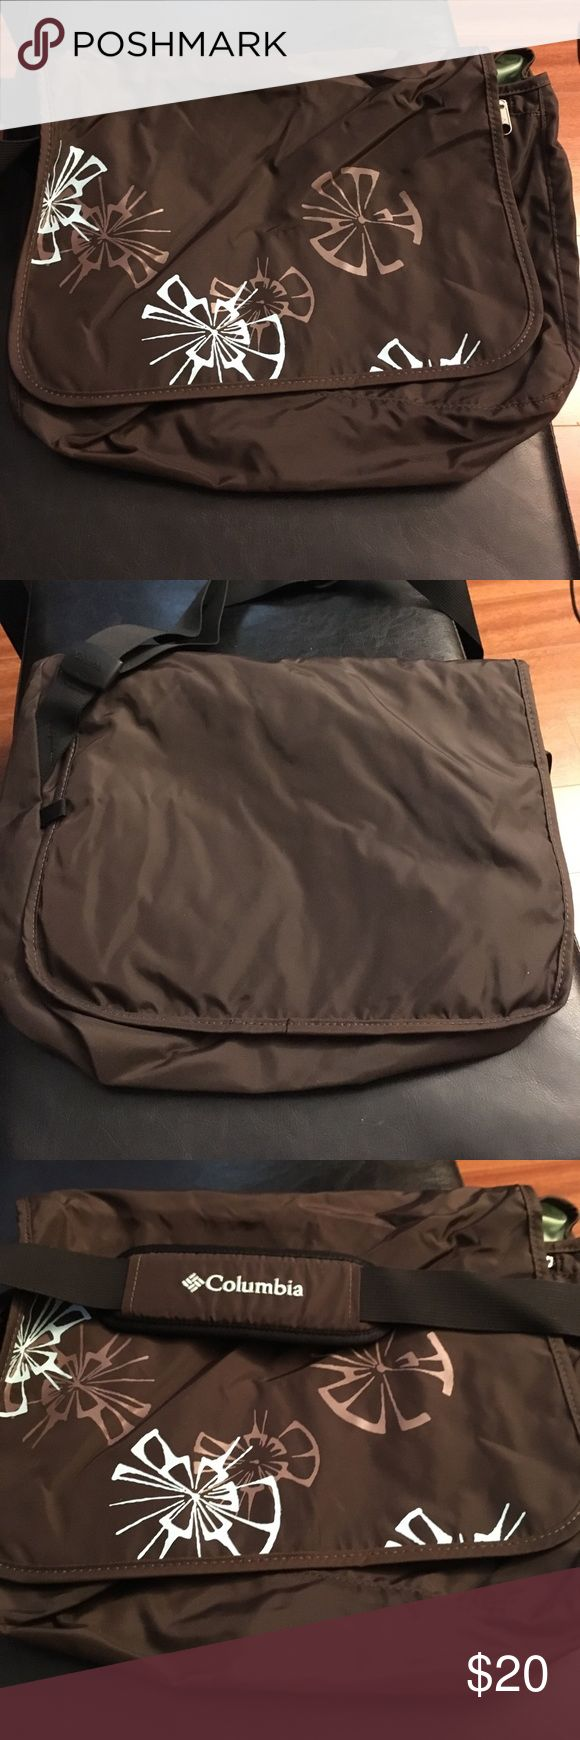 Columbia Women's Messenger Bag. Like new! Columbia Women's Messenger Bag. Used a few times. Still like new! Has Velcro closure. Zippered pocket inside with storage. Another zippered pocket underneath cover. Columbia Bags Crossbody Bags